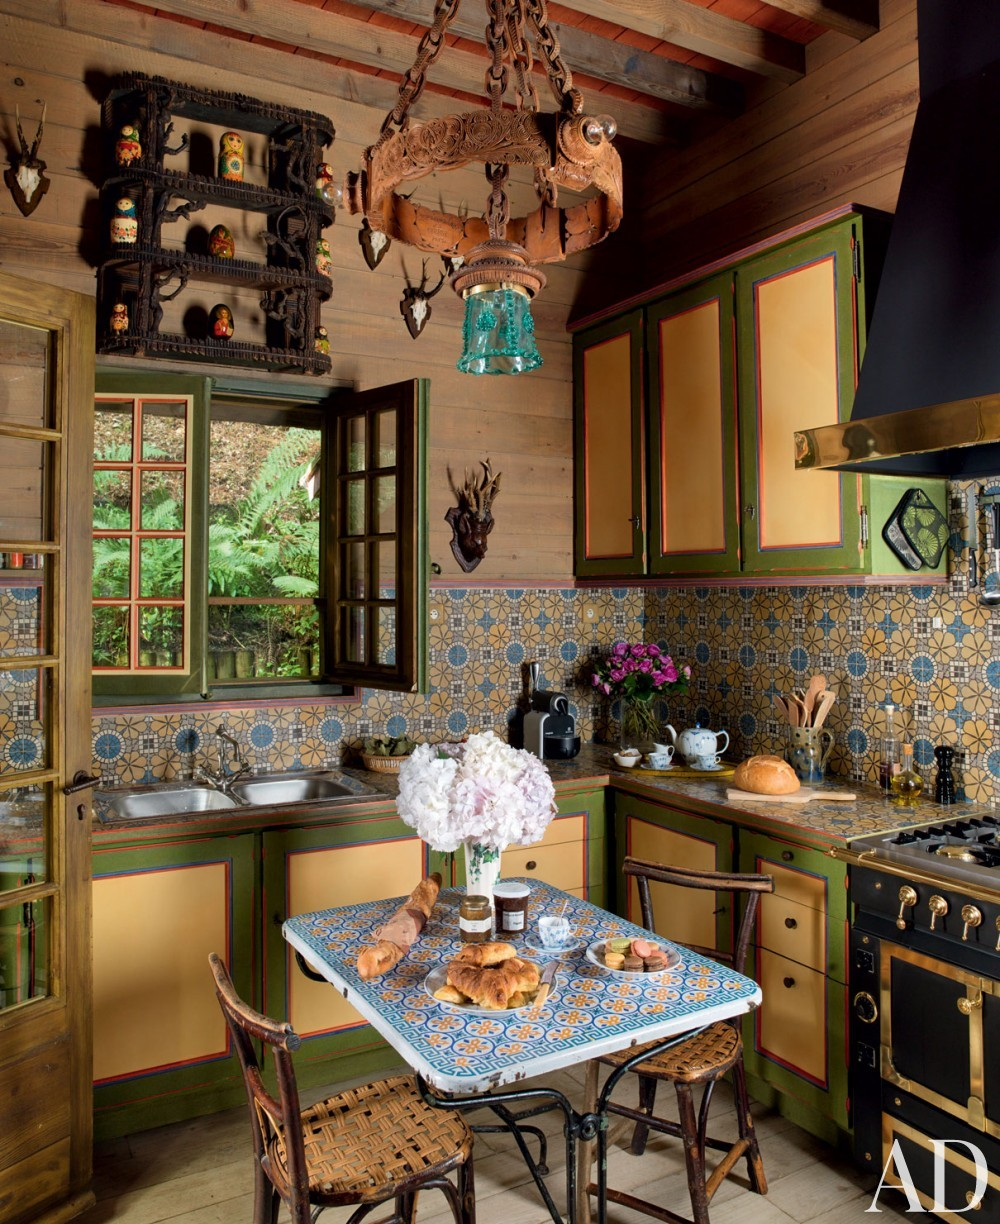 Exotic Kitchen by Jacques Grange and Jacques Grange in Normandy, France